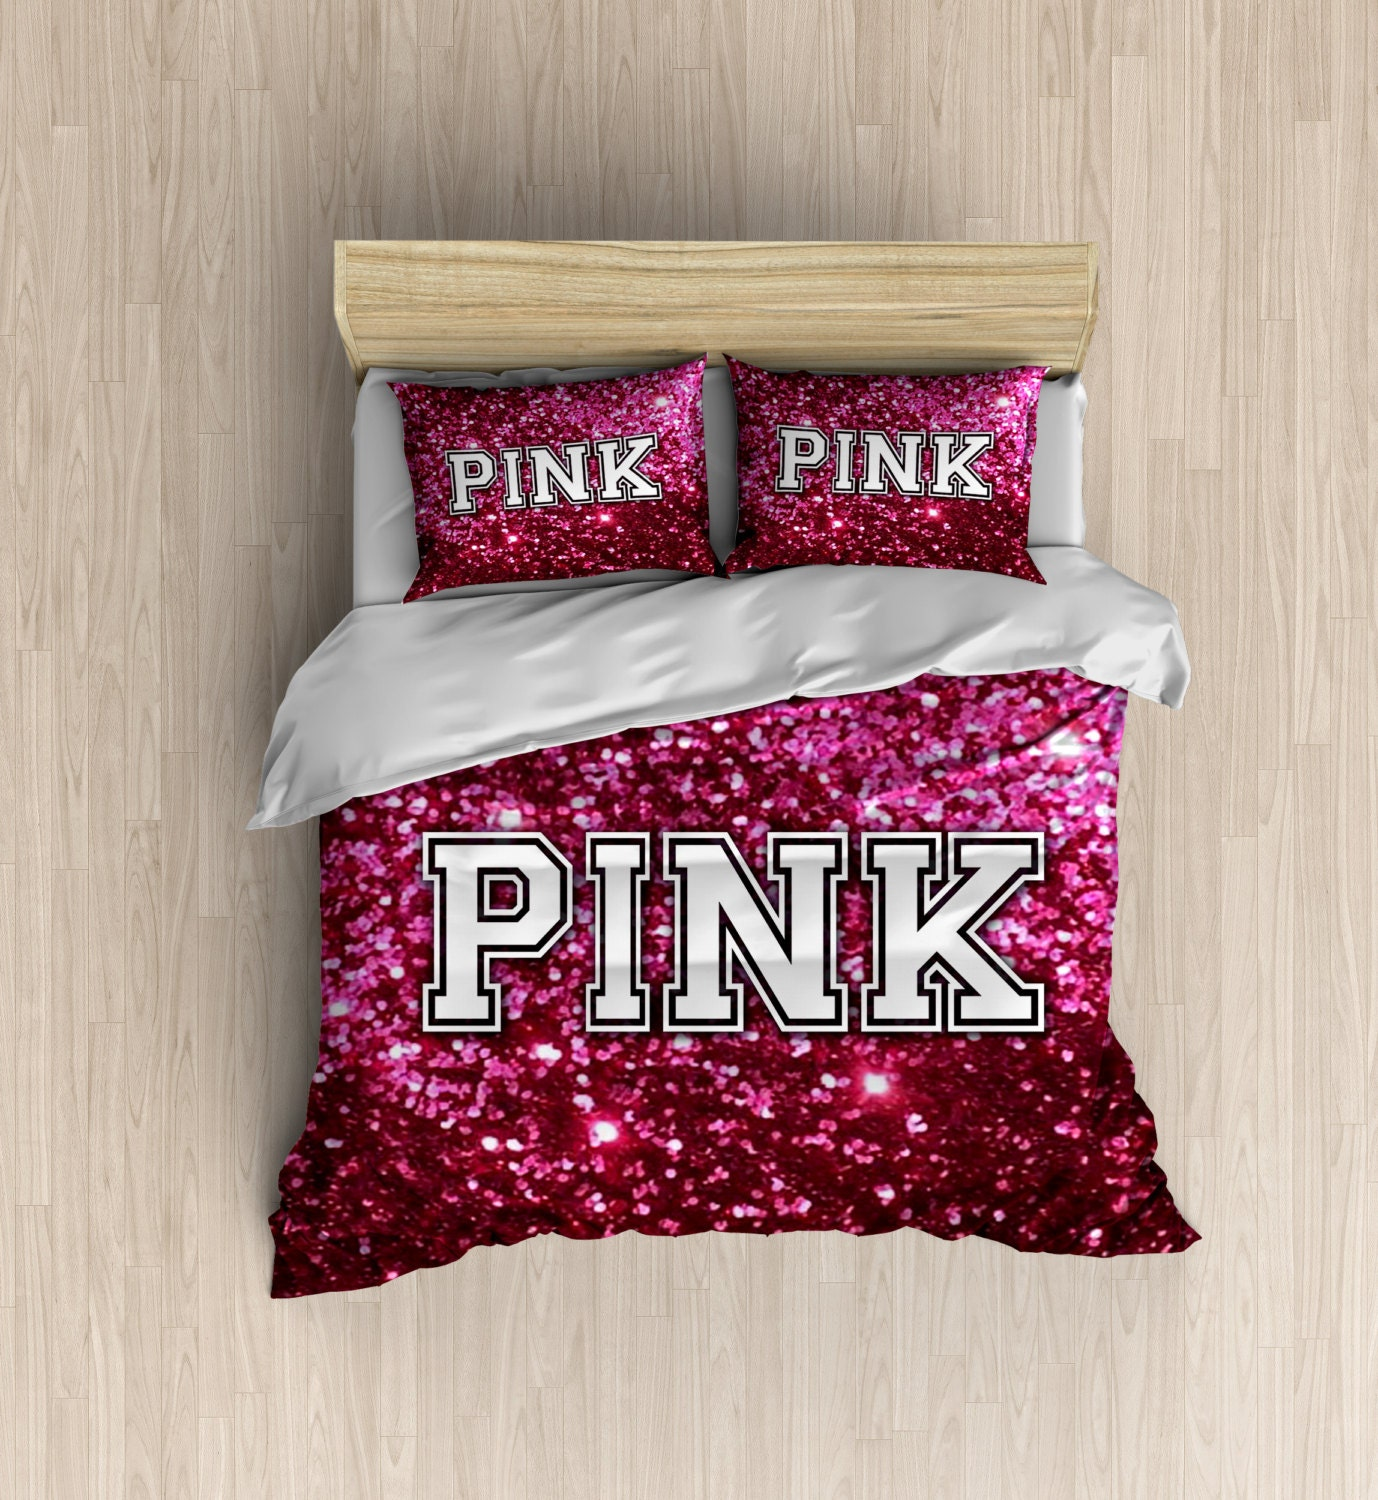 victoria secret pink bedding vs like duvet cover by. Black Bedroom Furniture Sets. Home Design Ideas